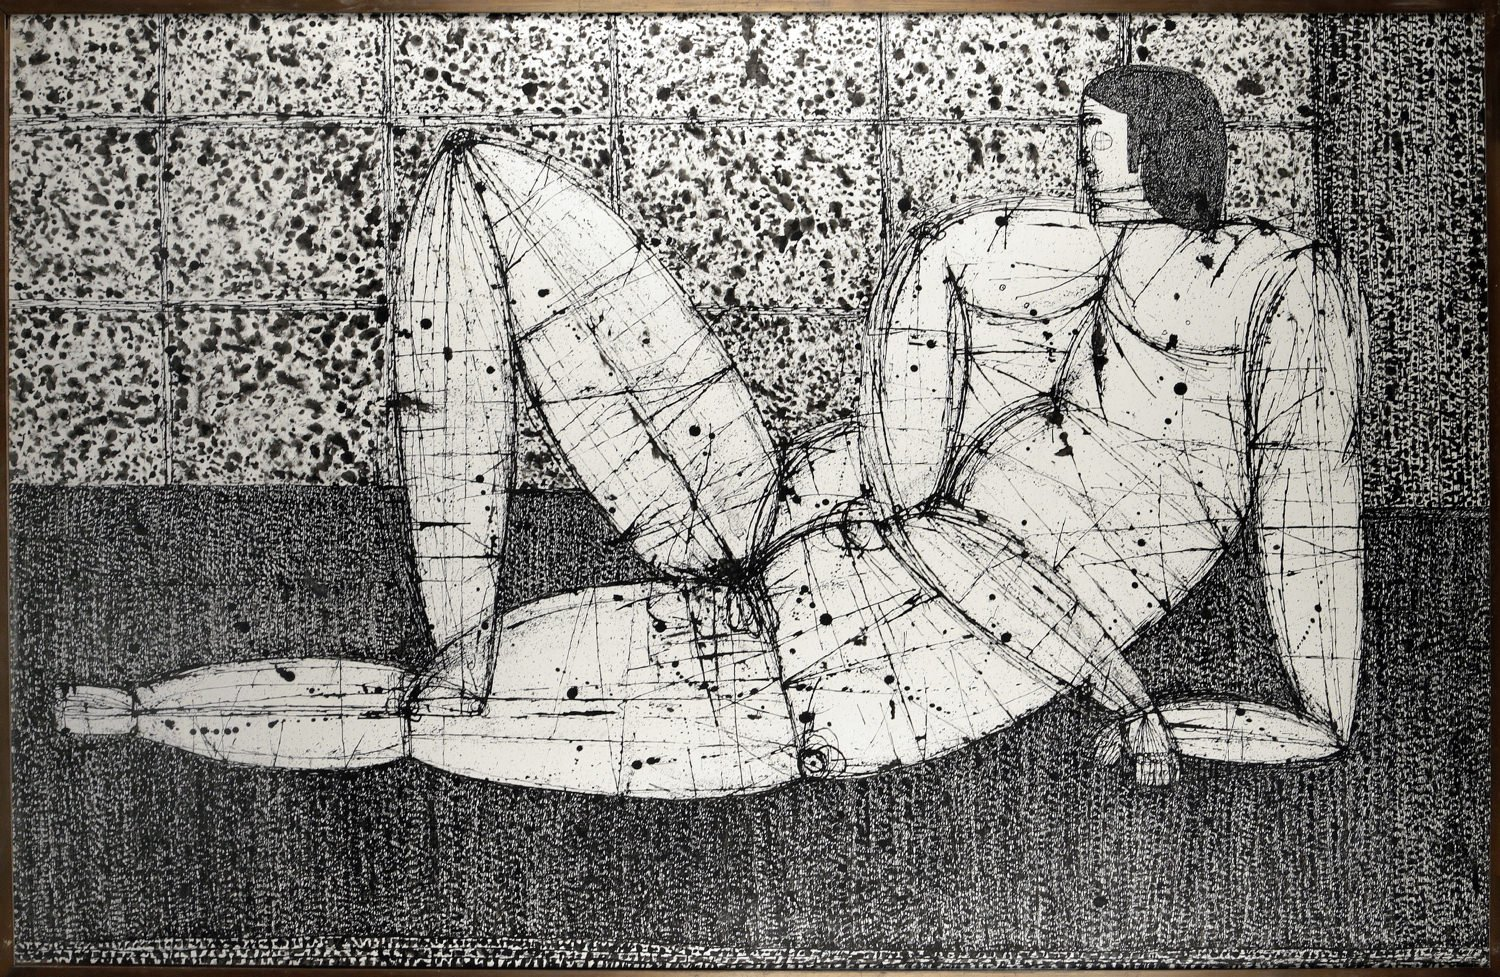 Reclining Figure, facing left (Nikos) by Joseph Glasco